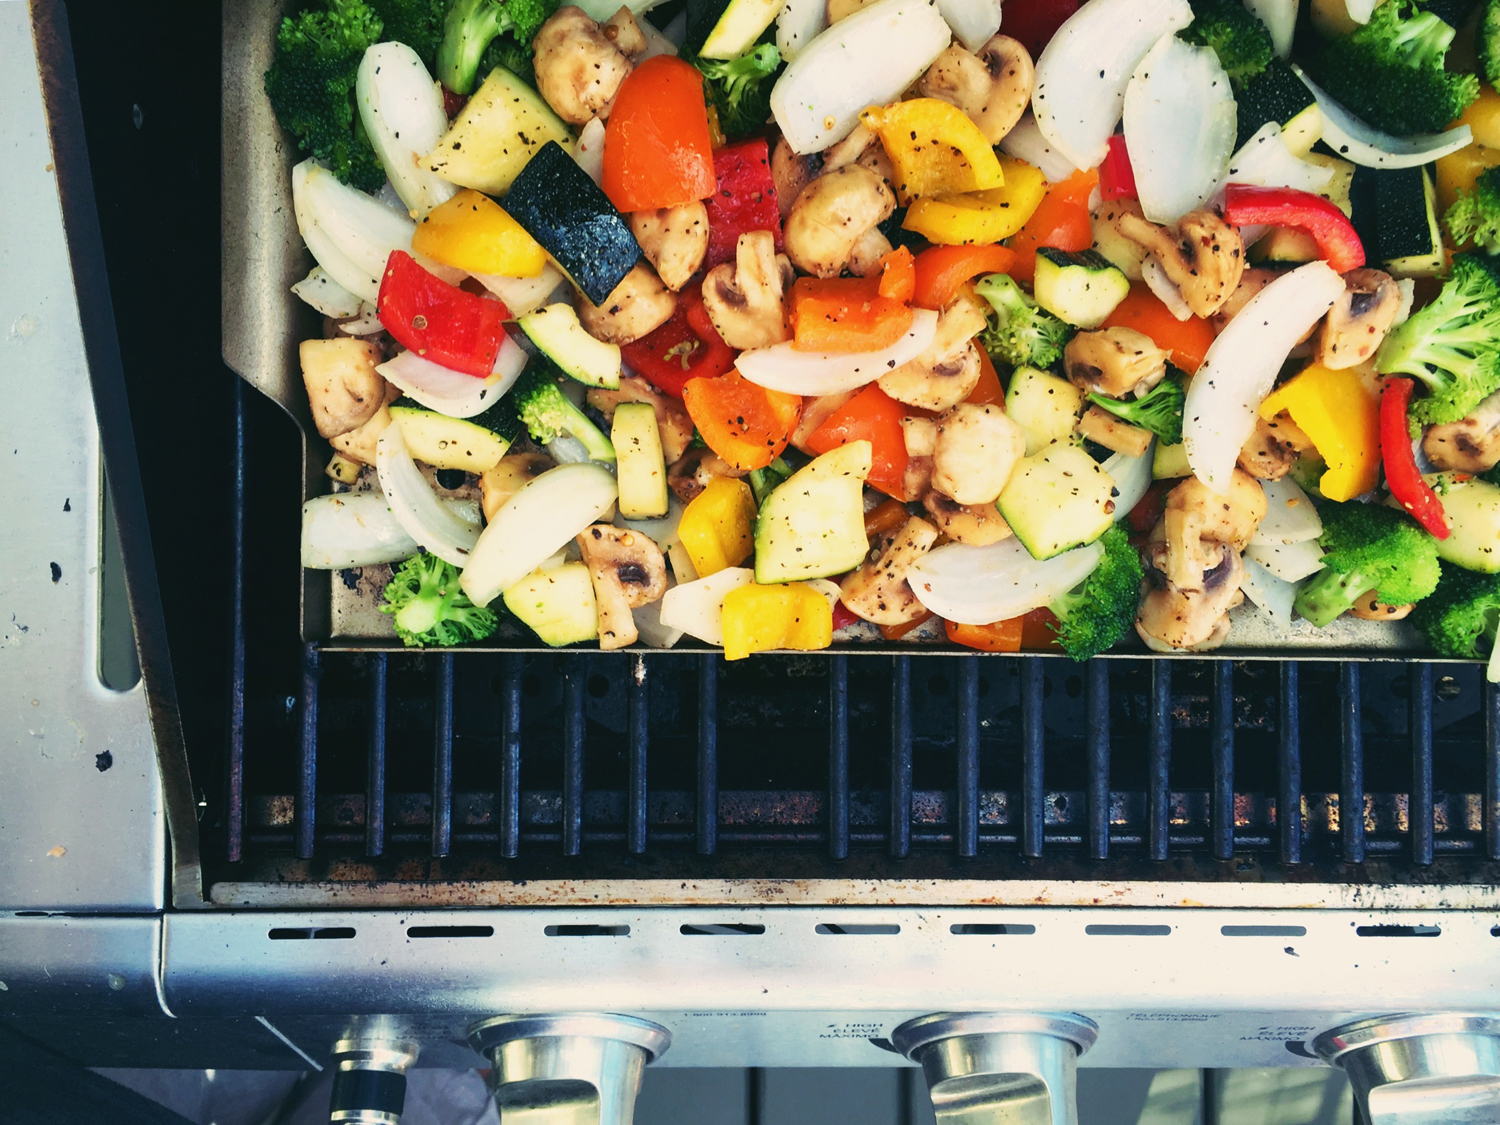 grilled-veggies.jpg